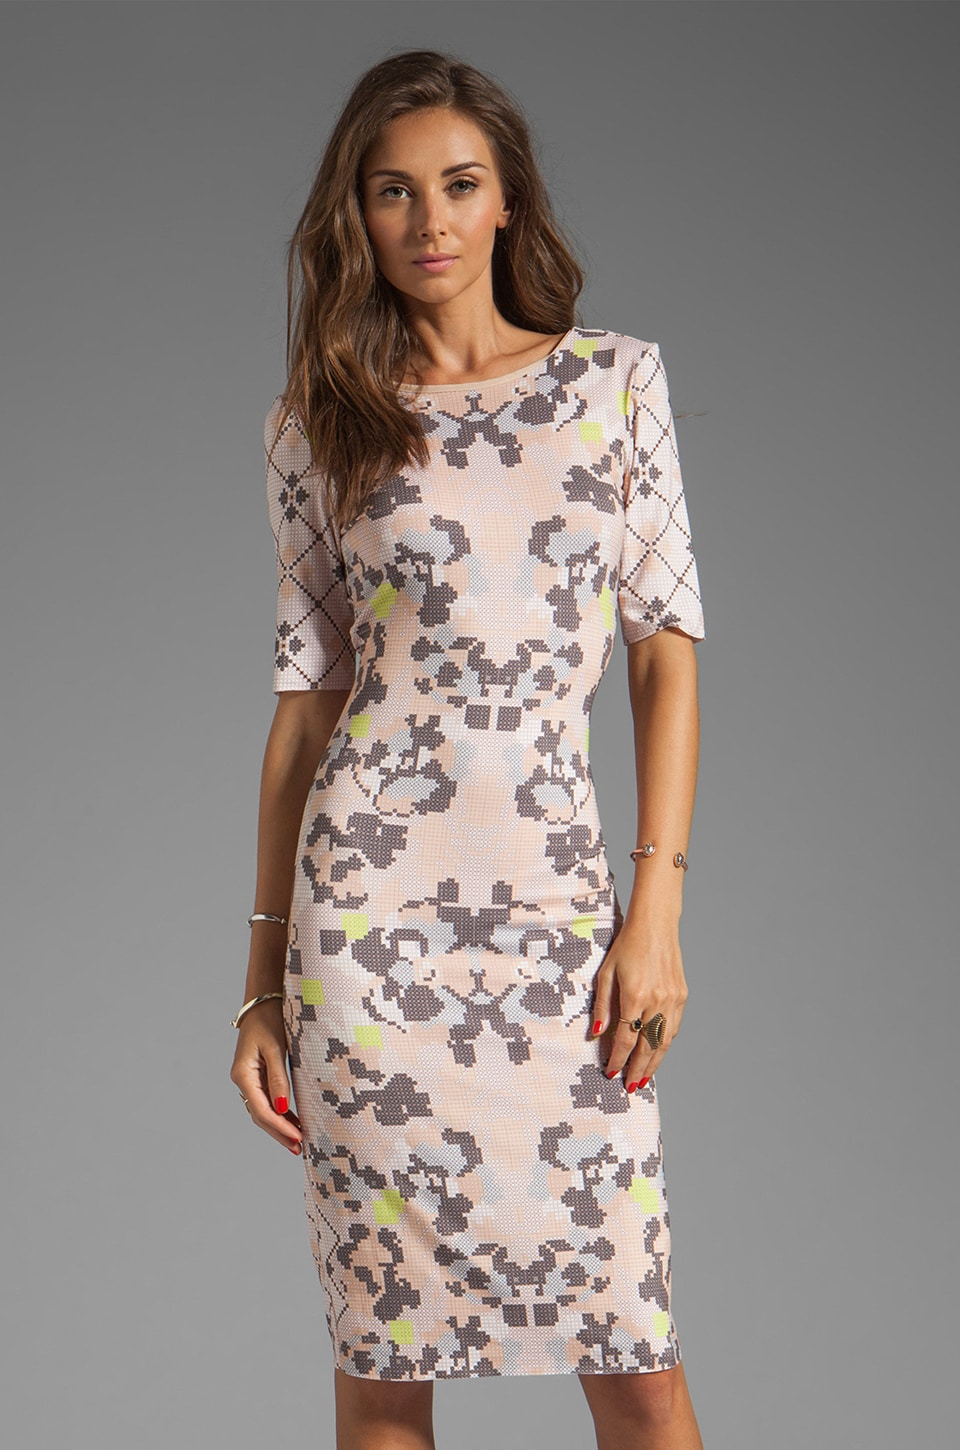 SAM&LAVI Arabella Dress in Digital Folks Print